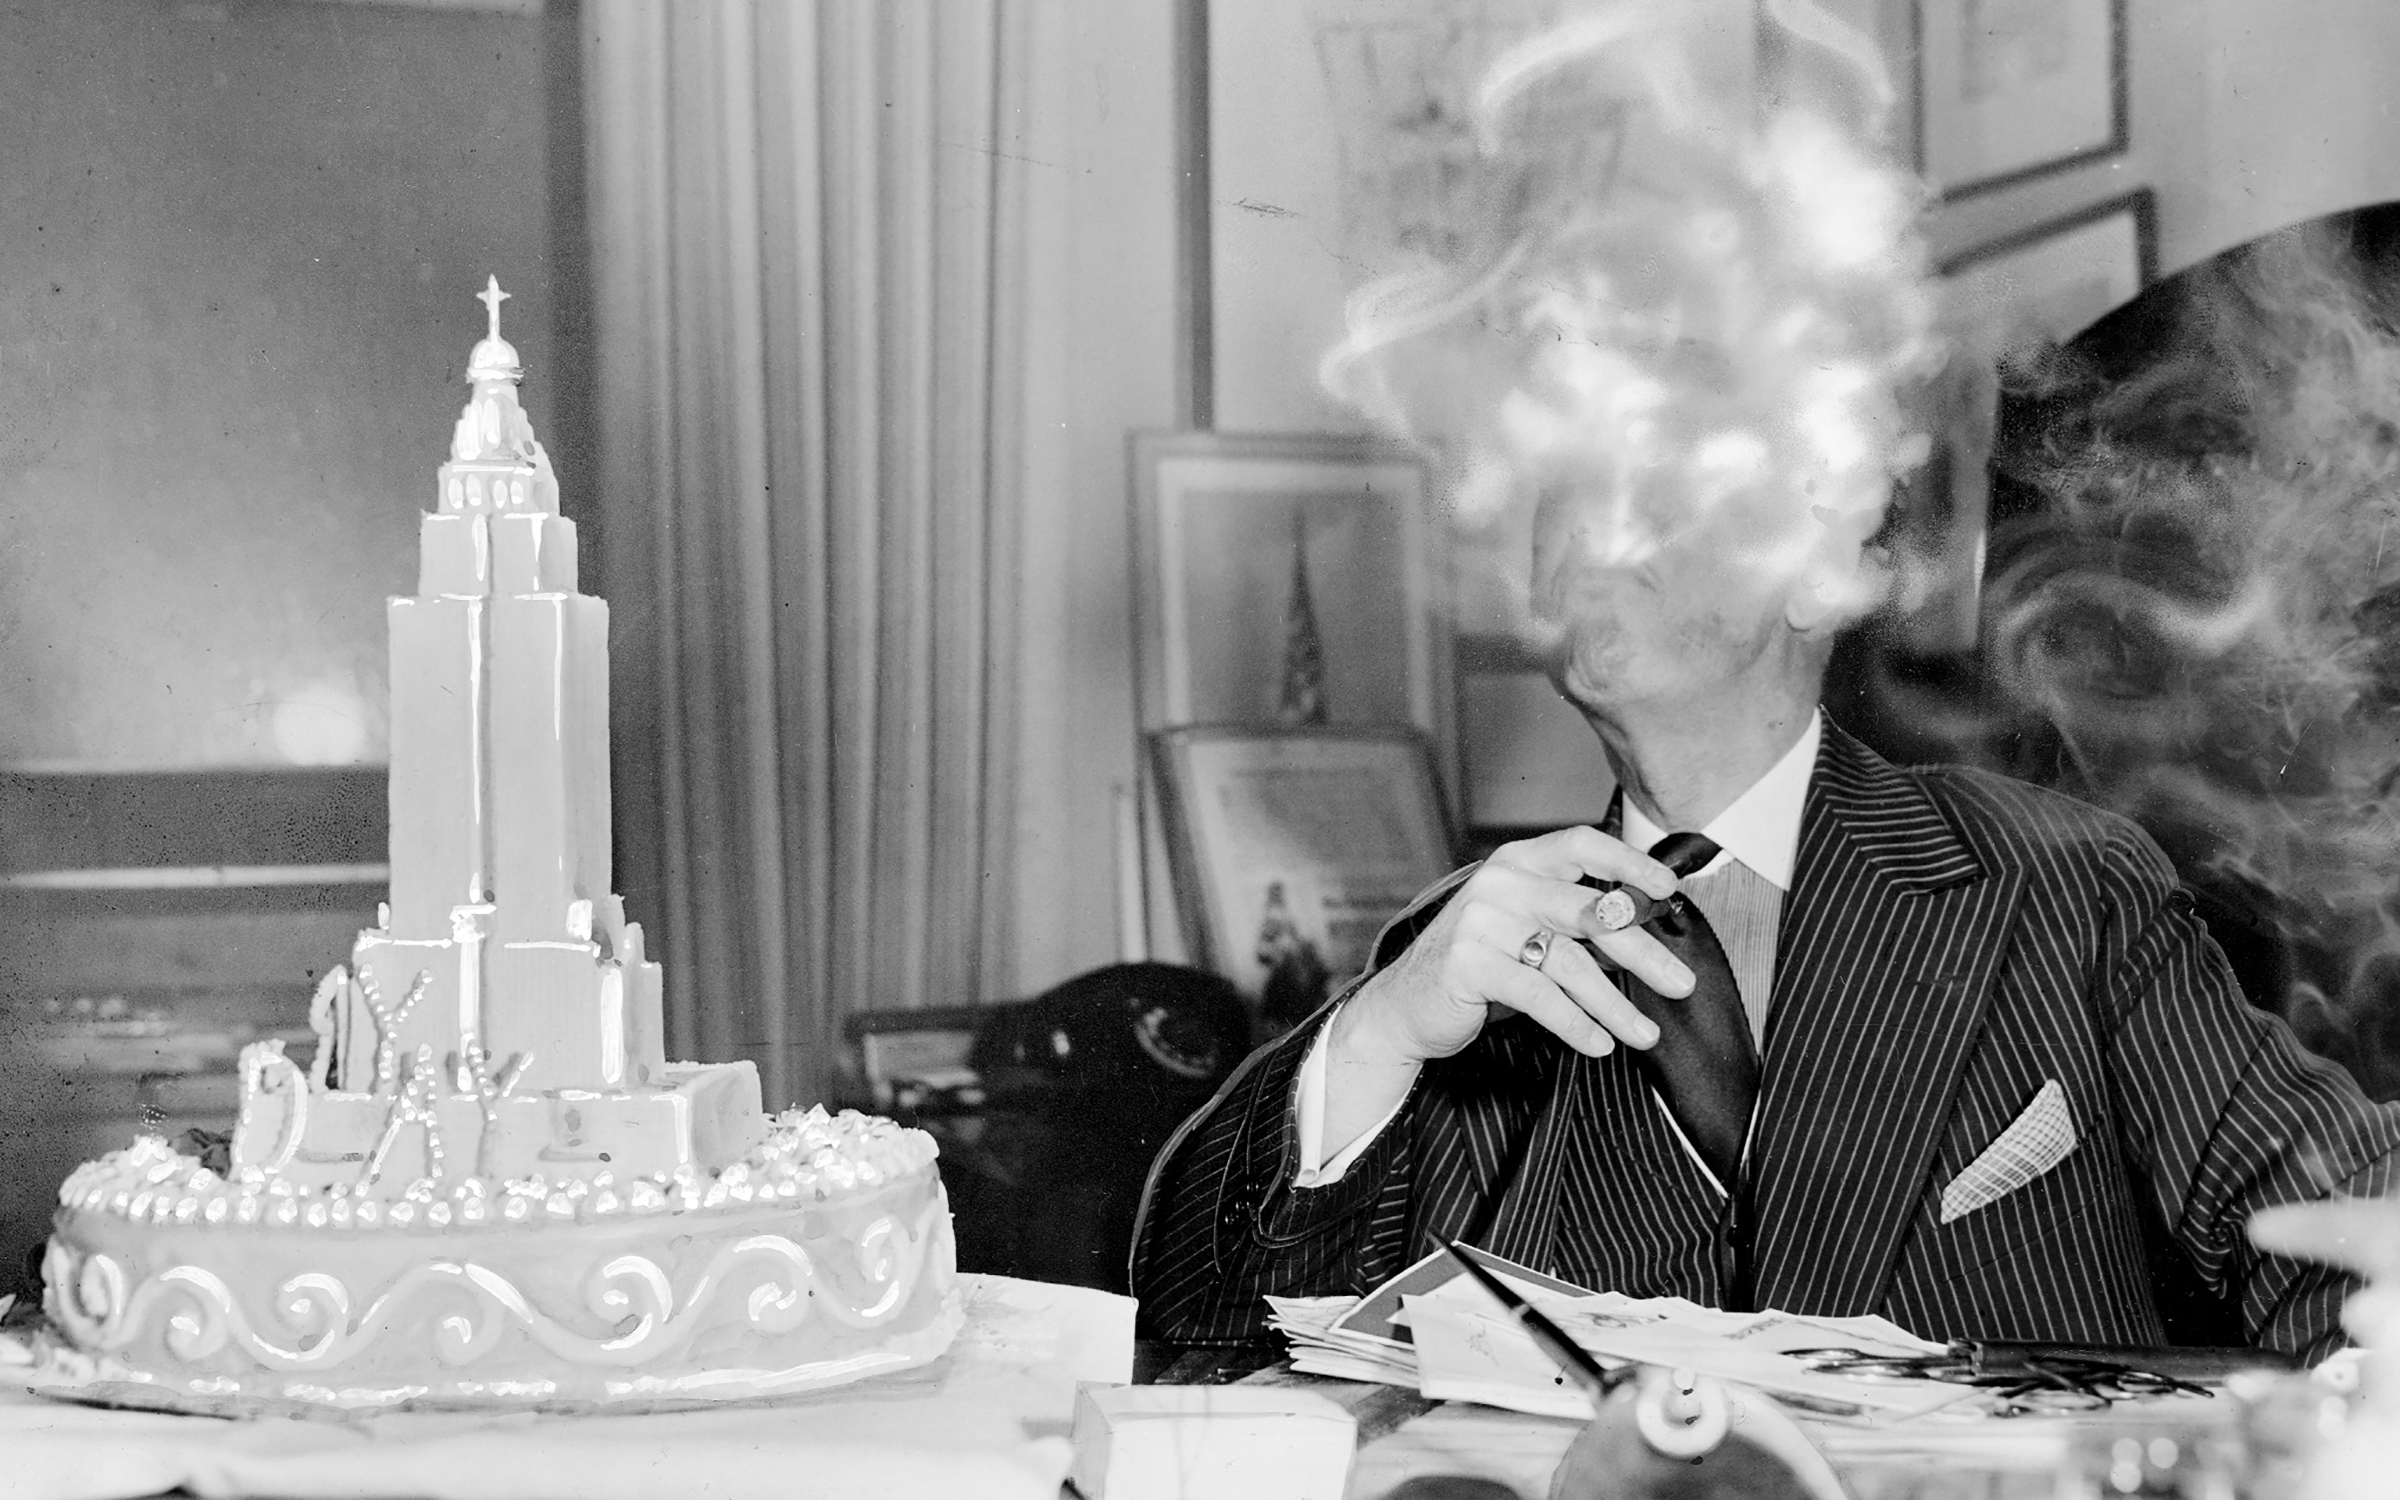 Al Smith pictured at his office atop the Empire State Building on his 69th birthday, Dec. 30, 1942